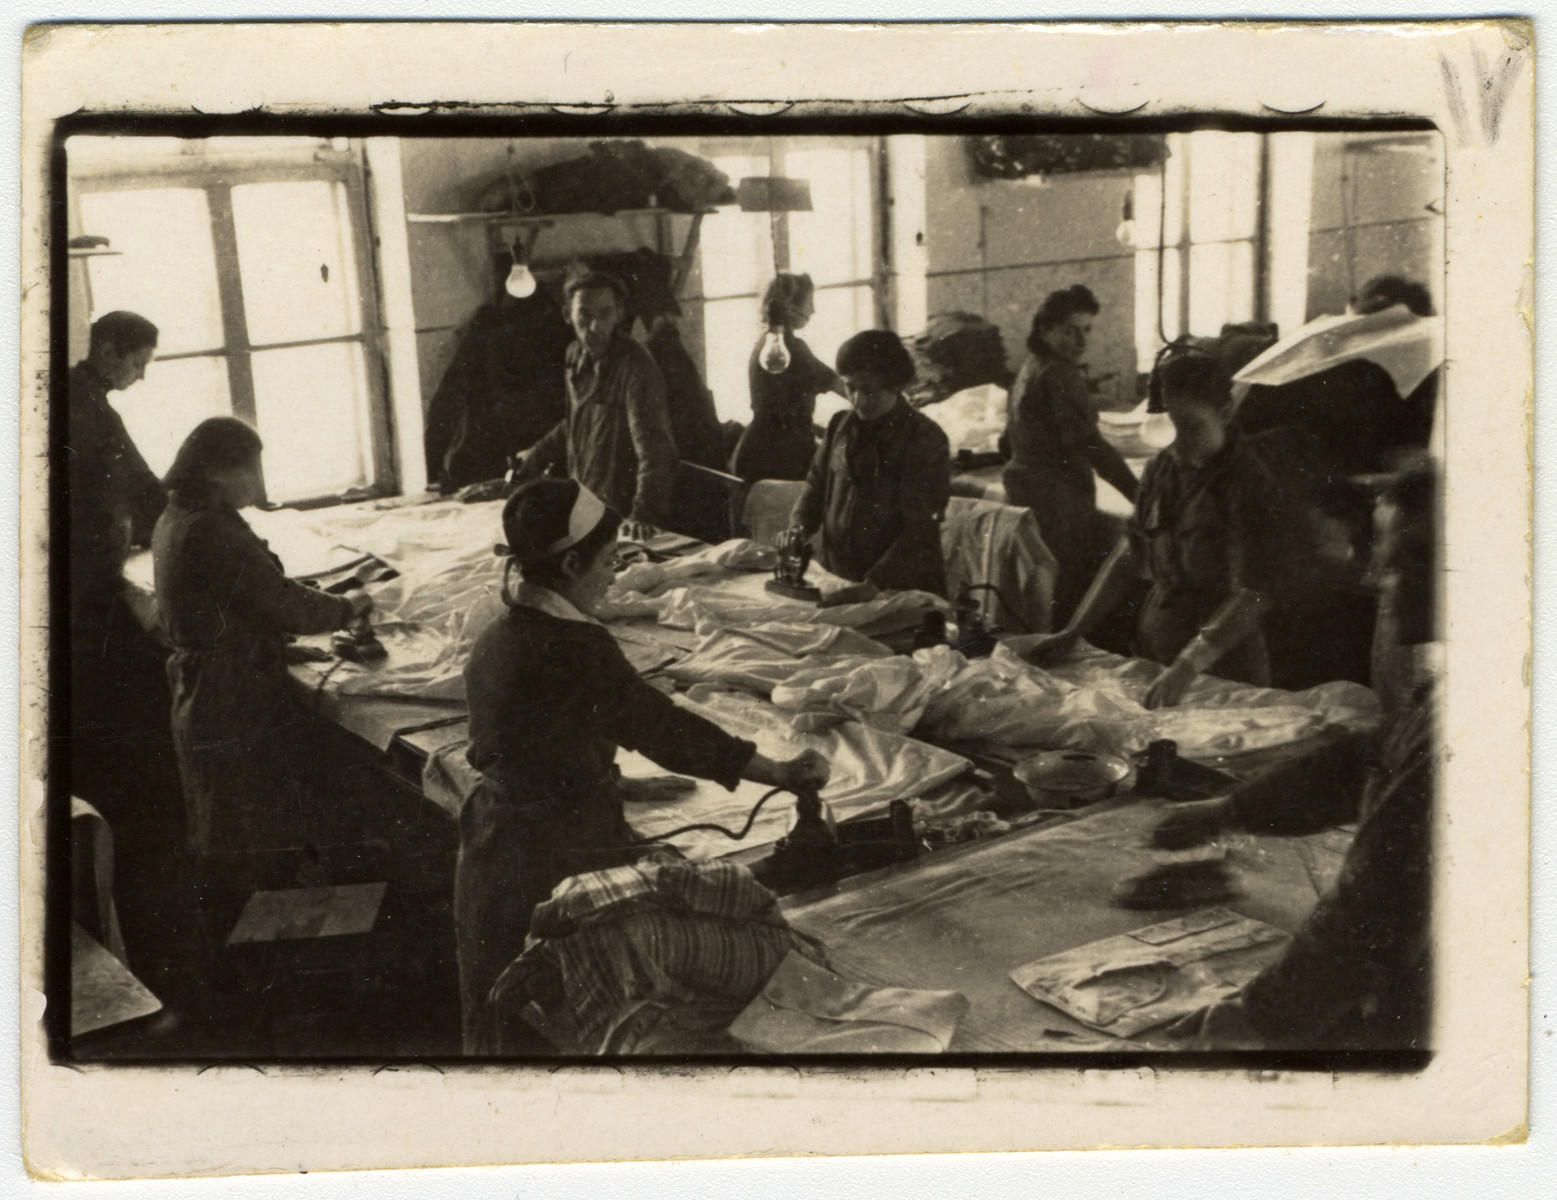 Jewish women iron sheets in either the laundry or a clothing factory in the Lodz ghetto.